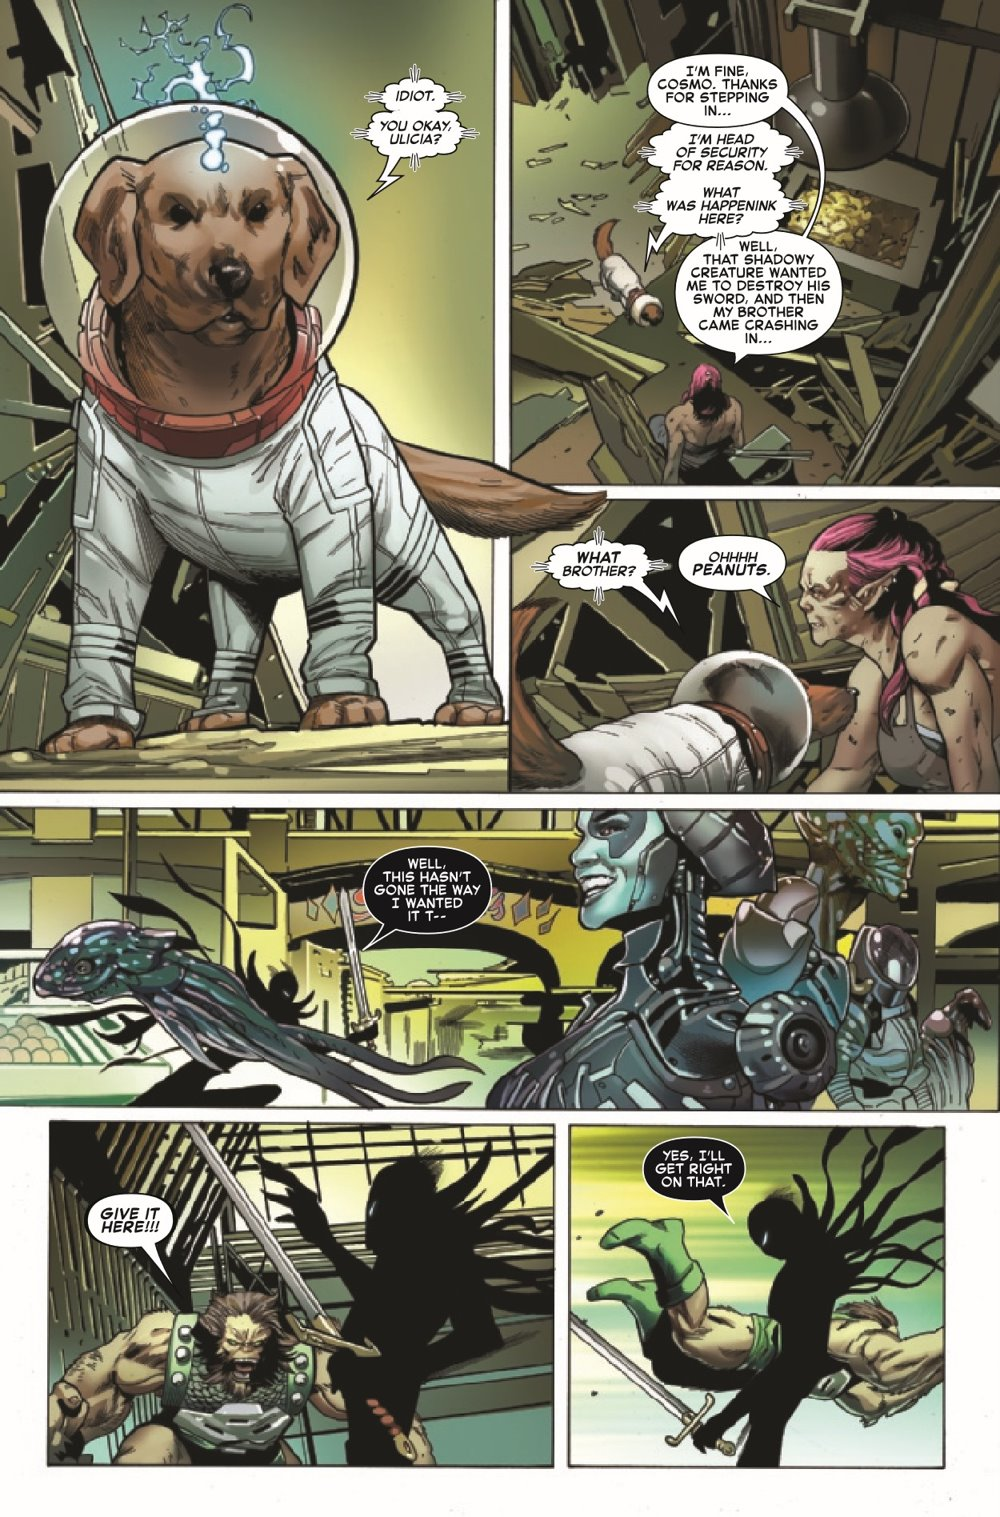 SYMBIOTESMKIB2020004_Preview-5 ComicList Previews: SYMBIOTE SPIDER-MAN KING IN BLACK #4 (OF 5)